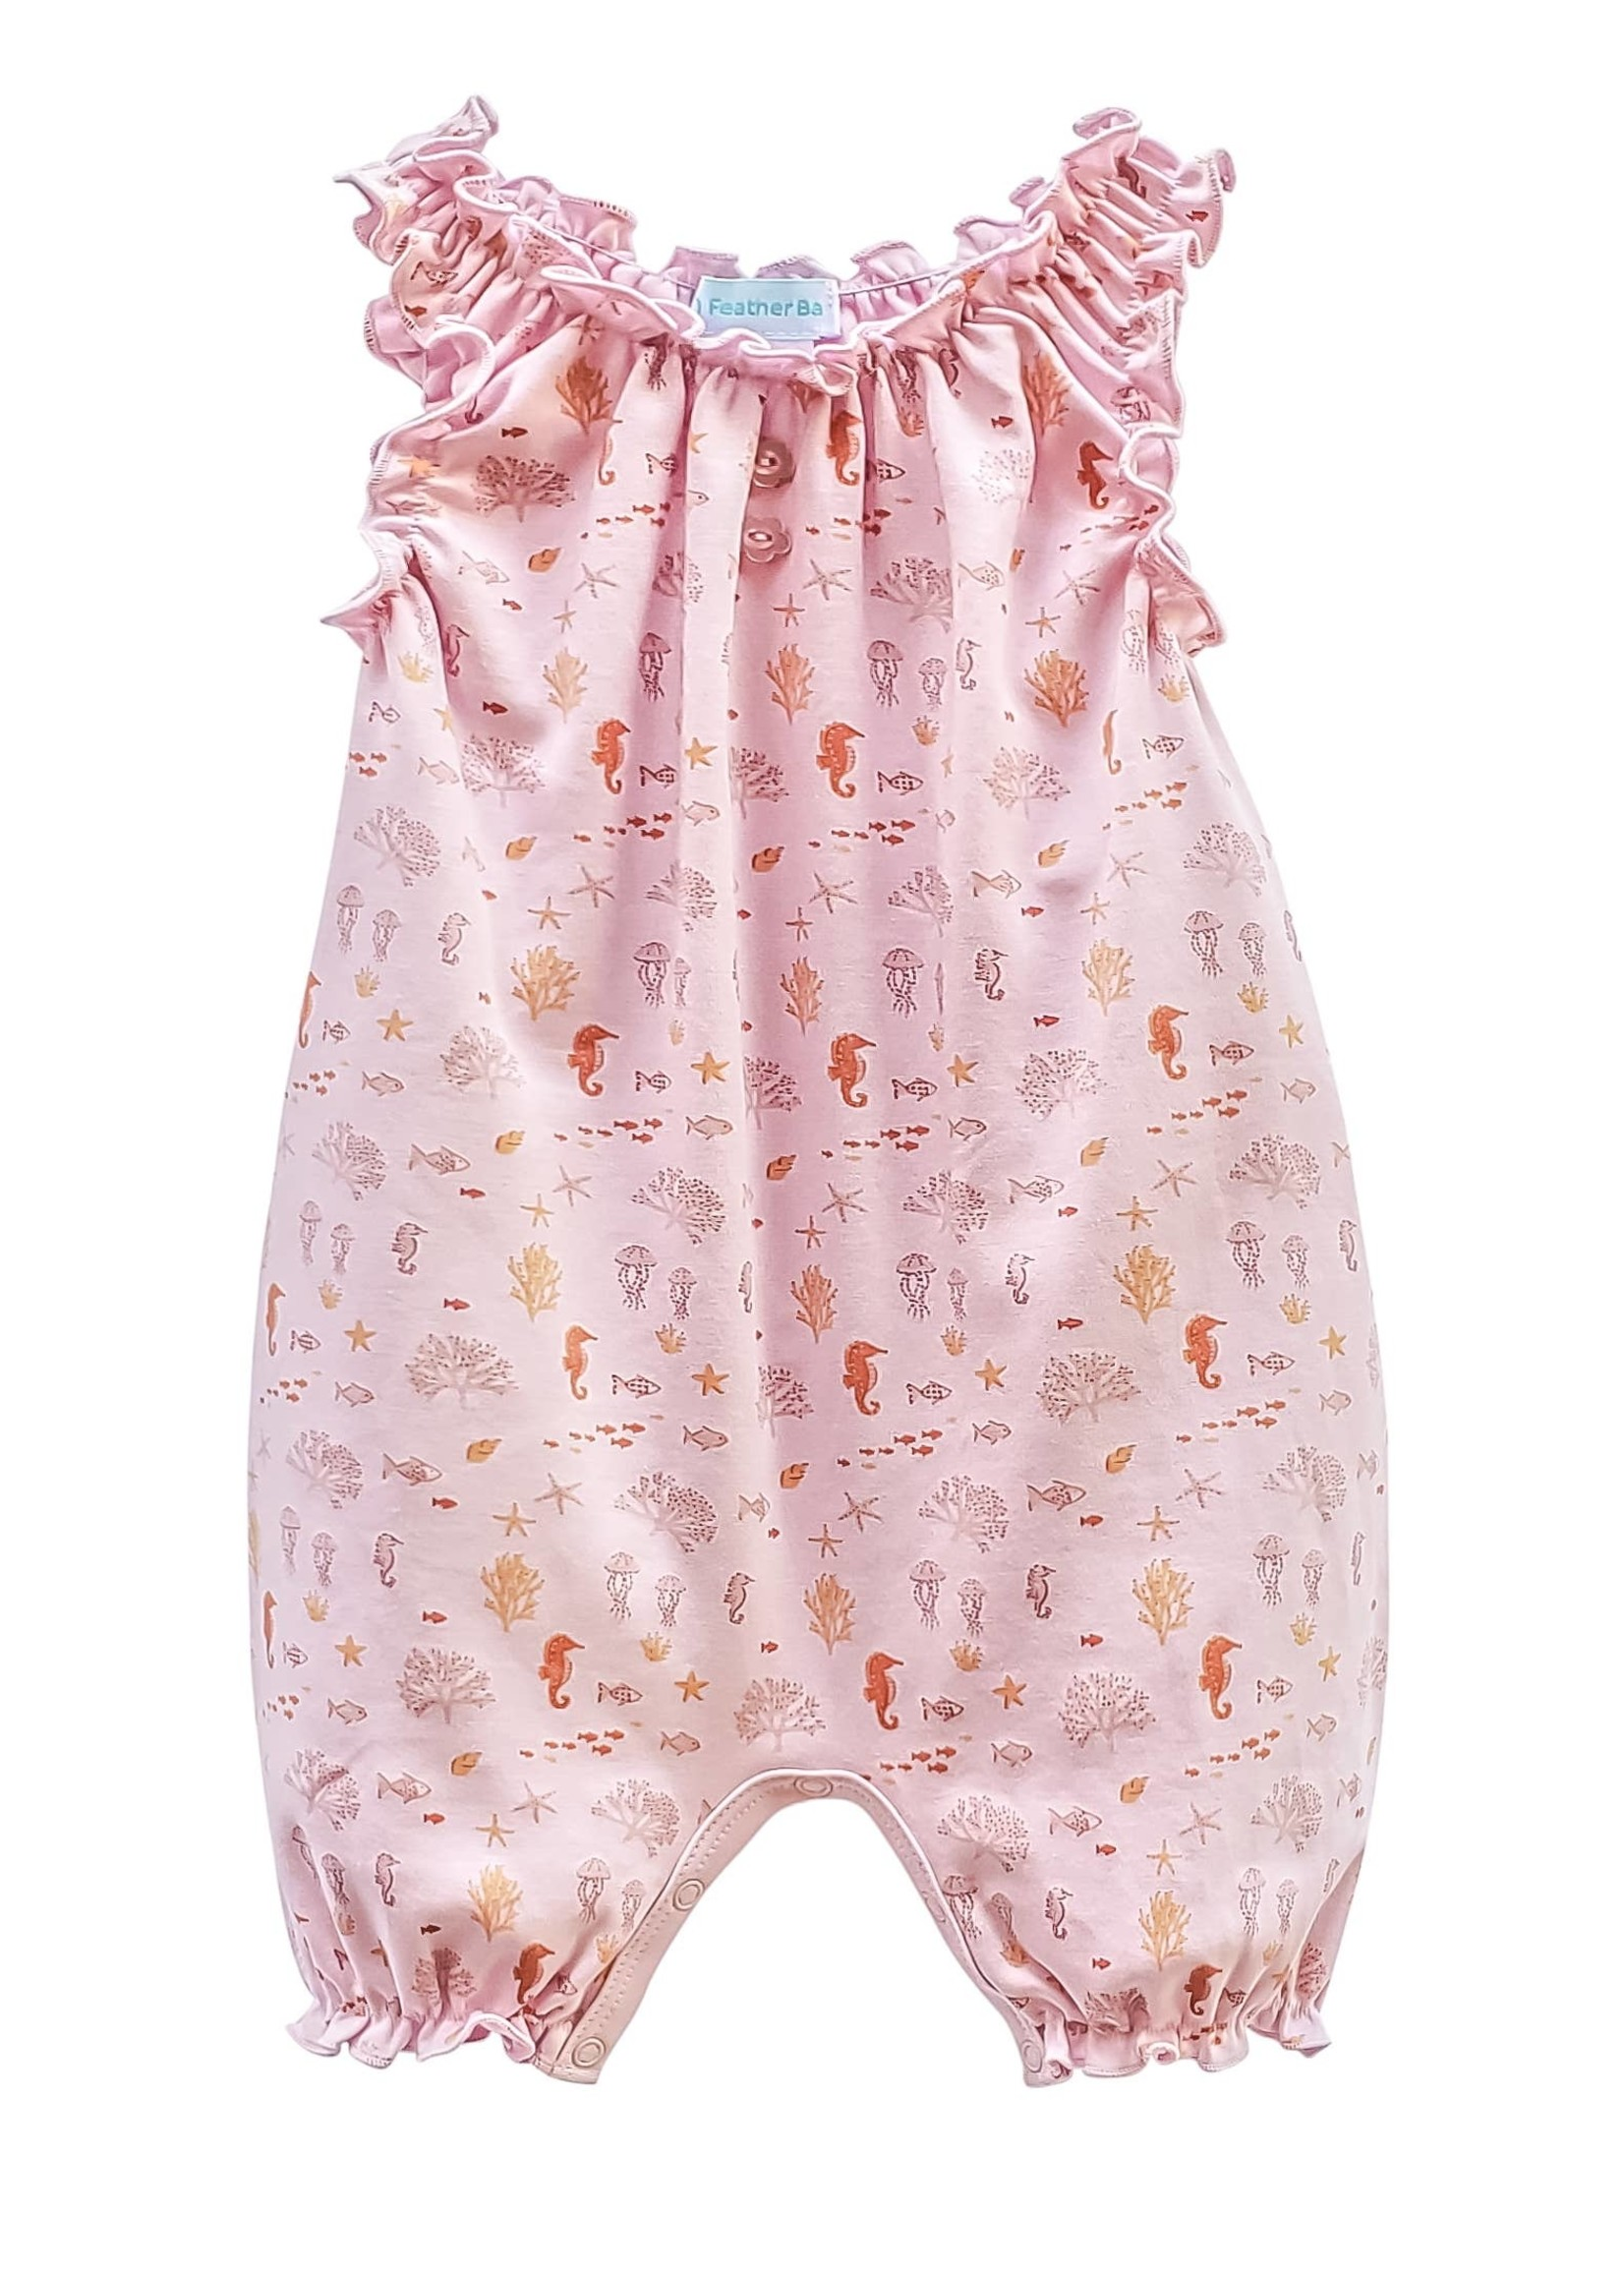 feather baby Reef- Cantaloupe on Soft Pink Sleeveless Romper